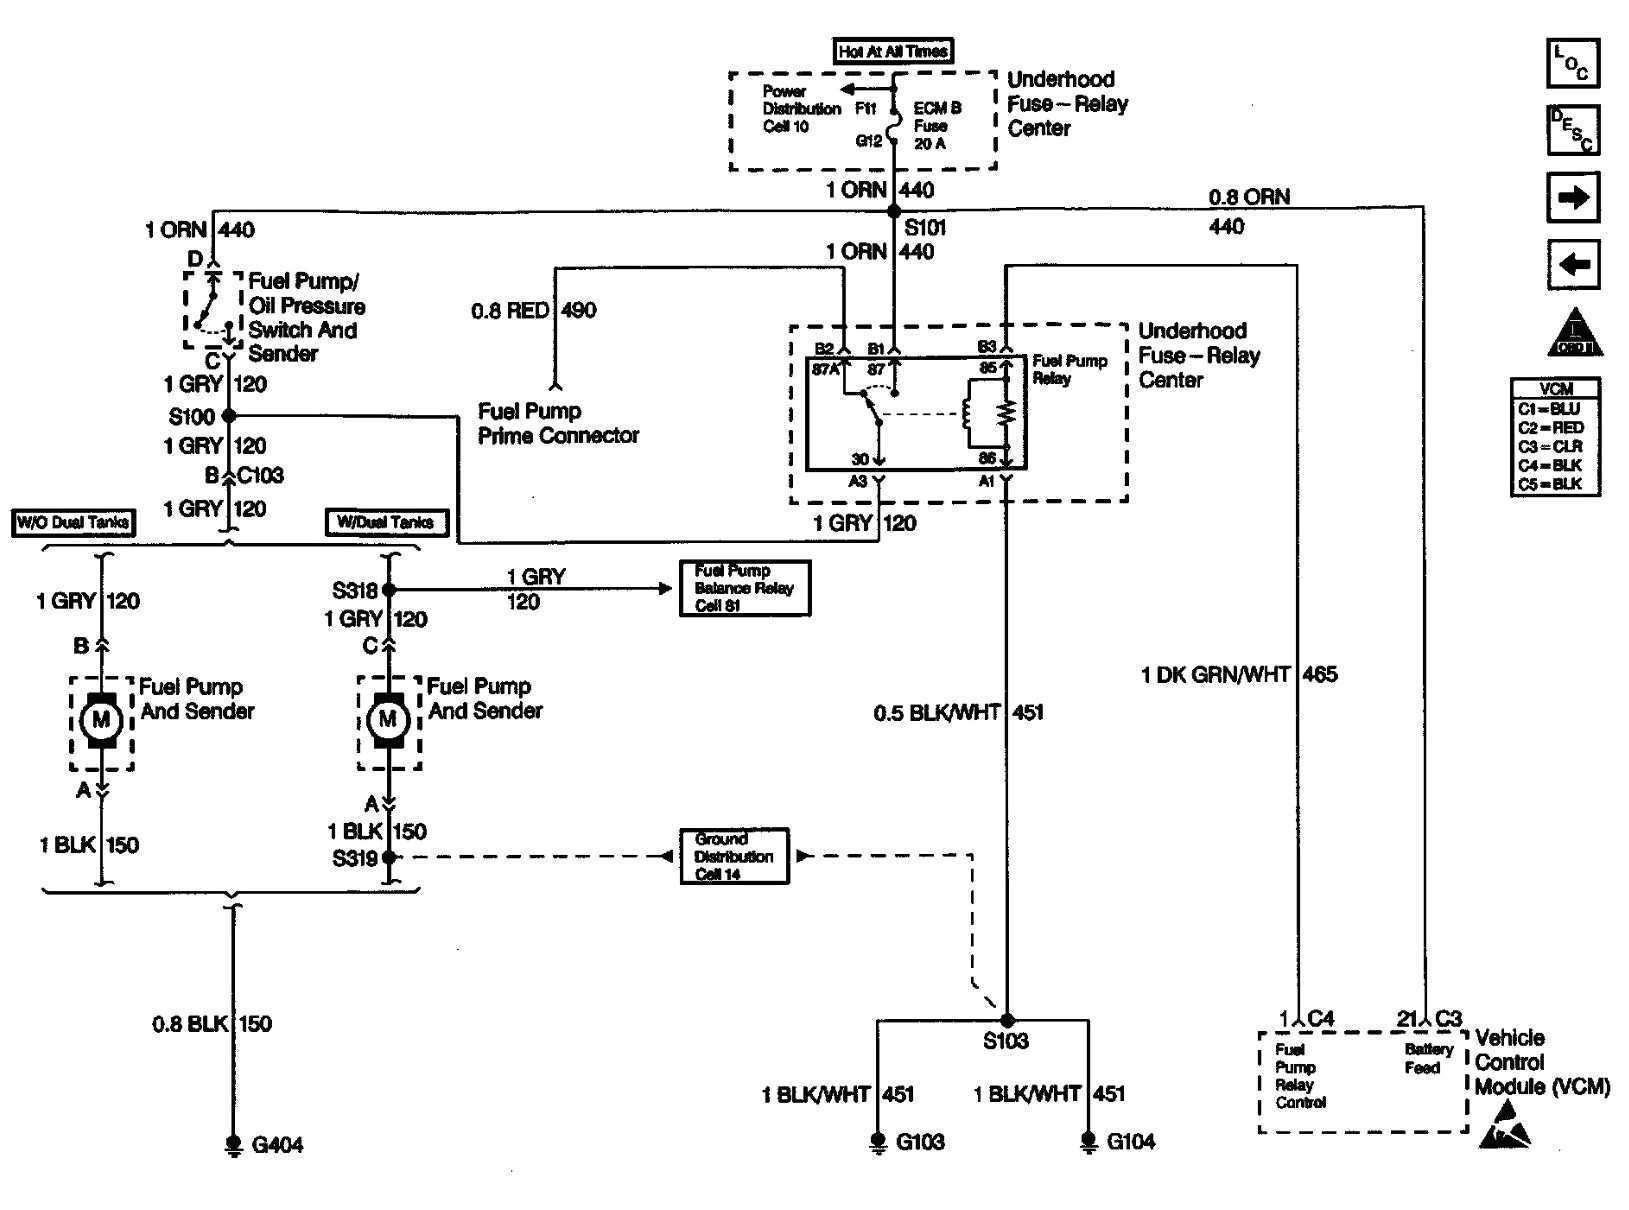 98 Panther 440 Wiring Diagram Sony Marine Stereo Wiring Diagram For Wiring Diagram Schematics